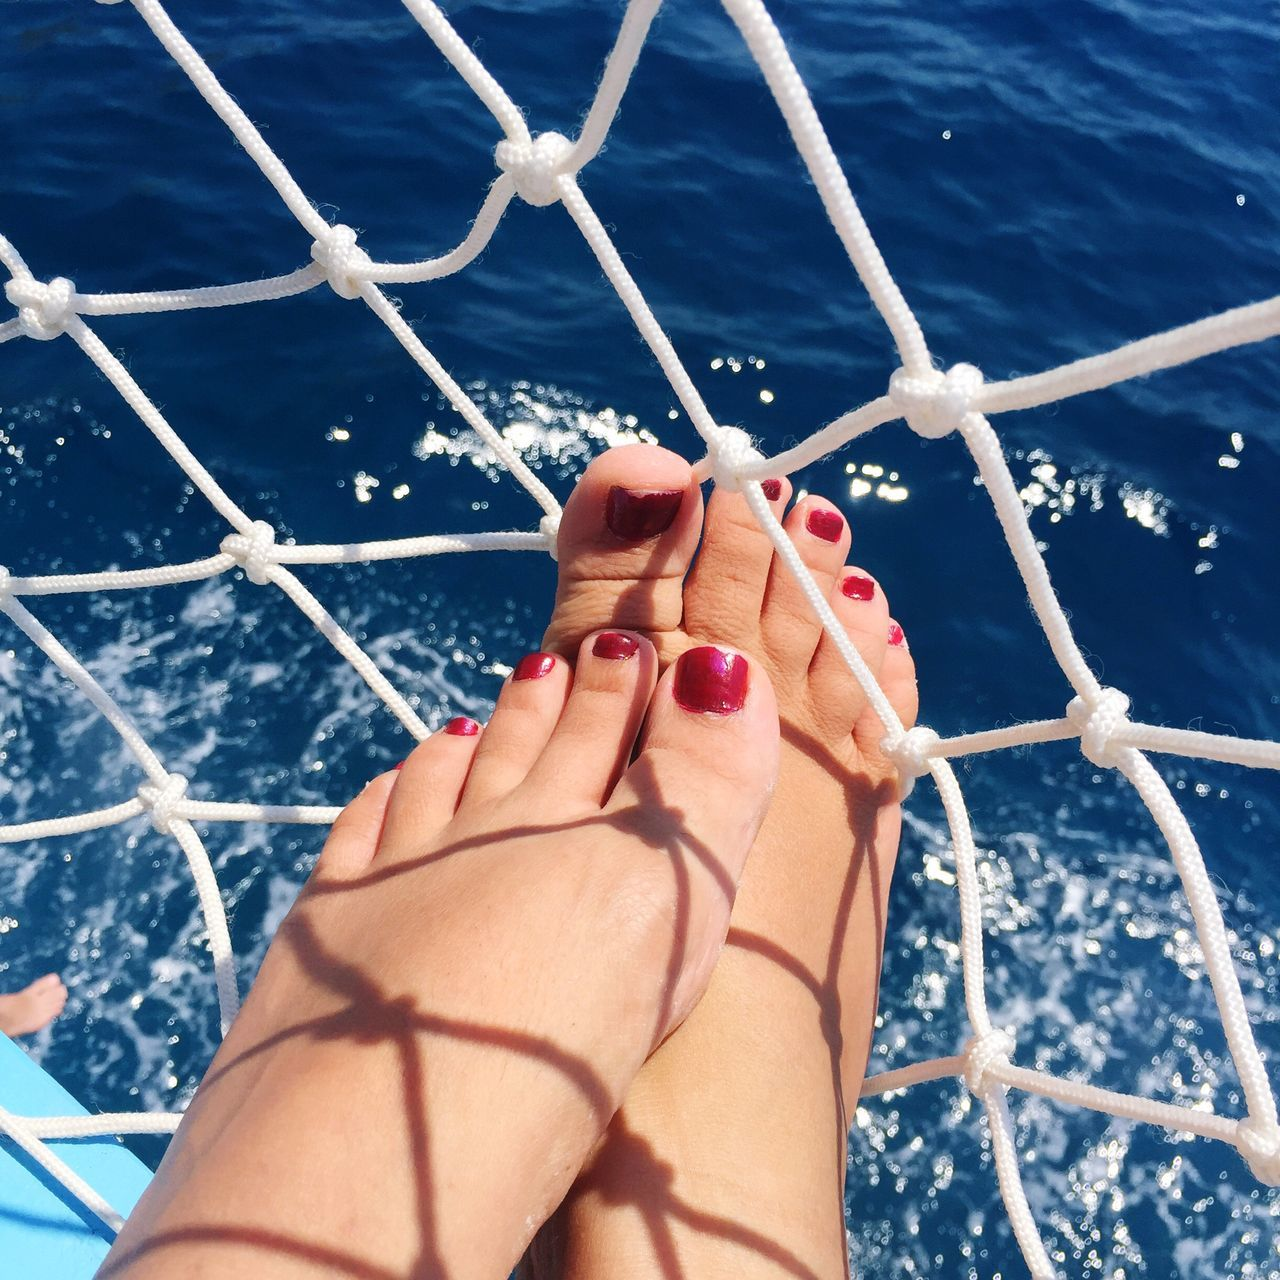 barefoot, sea, low section, water, human leg, human foot, real people, human body part, one person, day, outdoors, railing, sunlight, high angle view, women, nail polish, nautical vessel, blue, summer, boat deck, close-up, nature, beauty in nature, human hand, adult, people